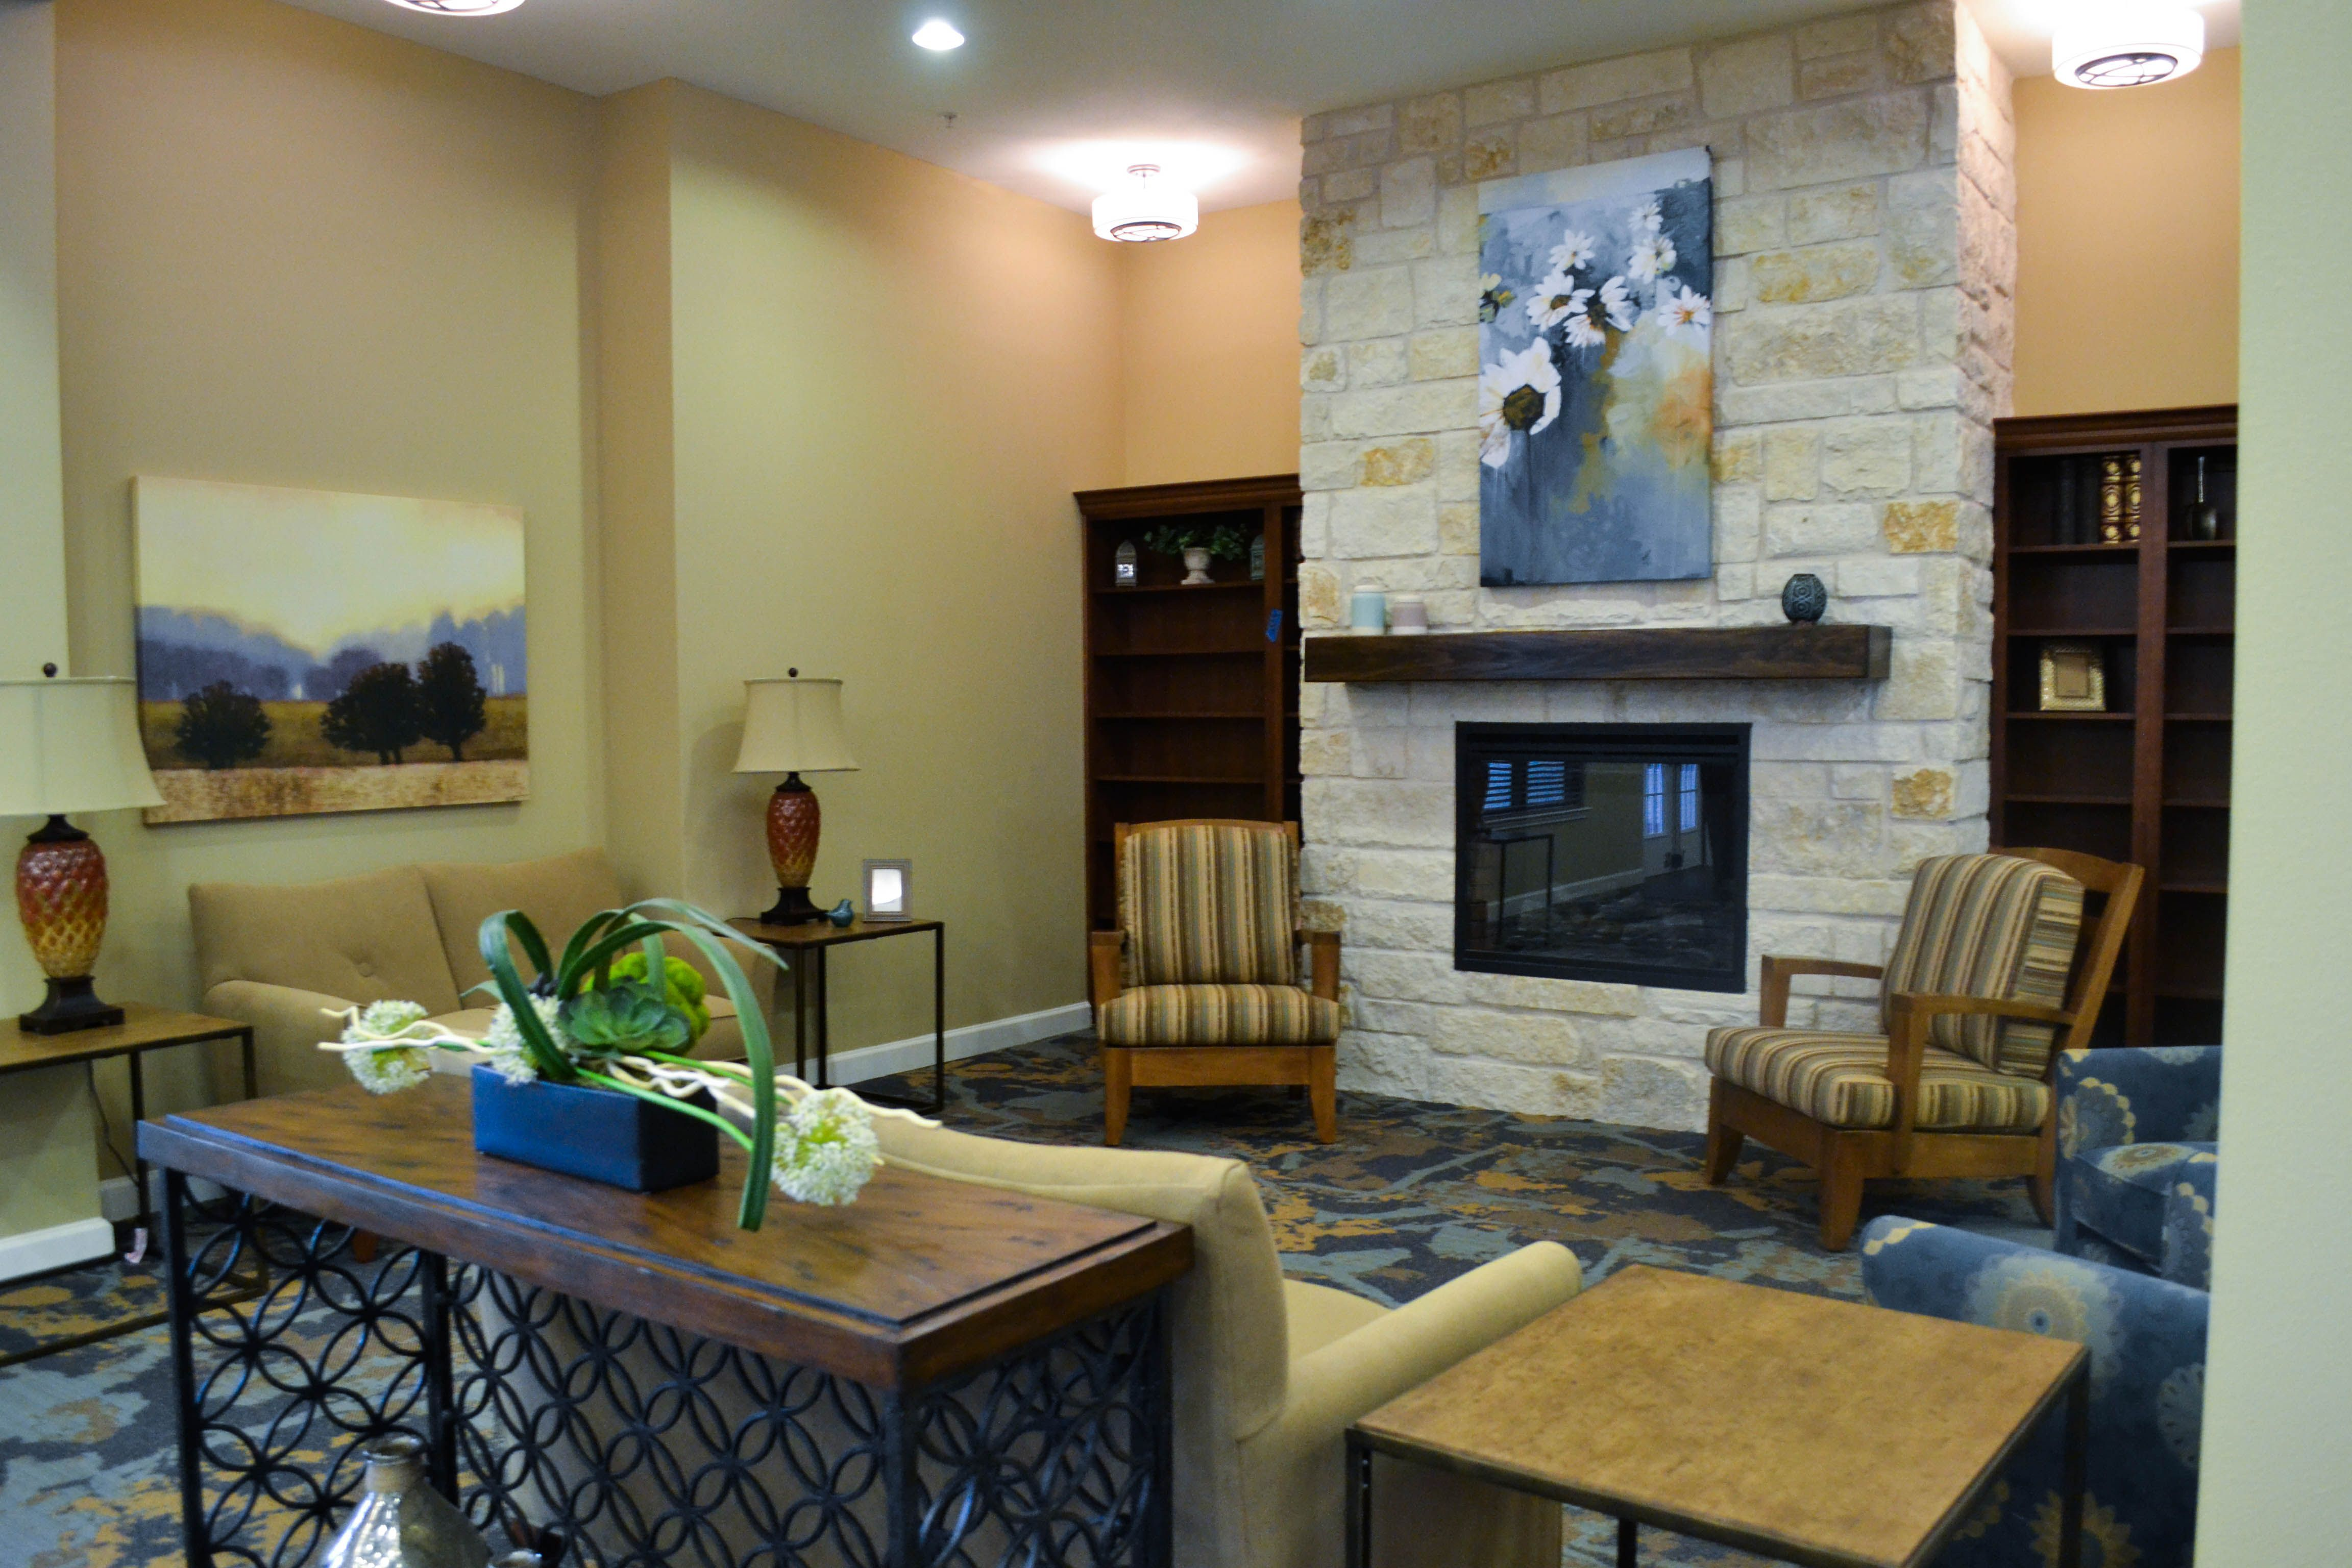 Legacy Oaks Assisted Living And Memory Care Offers Planned Events Ongoing Activities And Scheduled Private Dining Room Senior Living Senior Living Communities